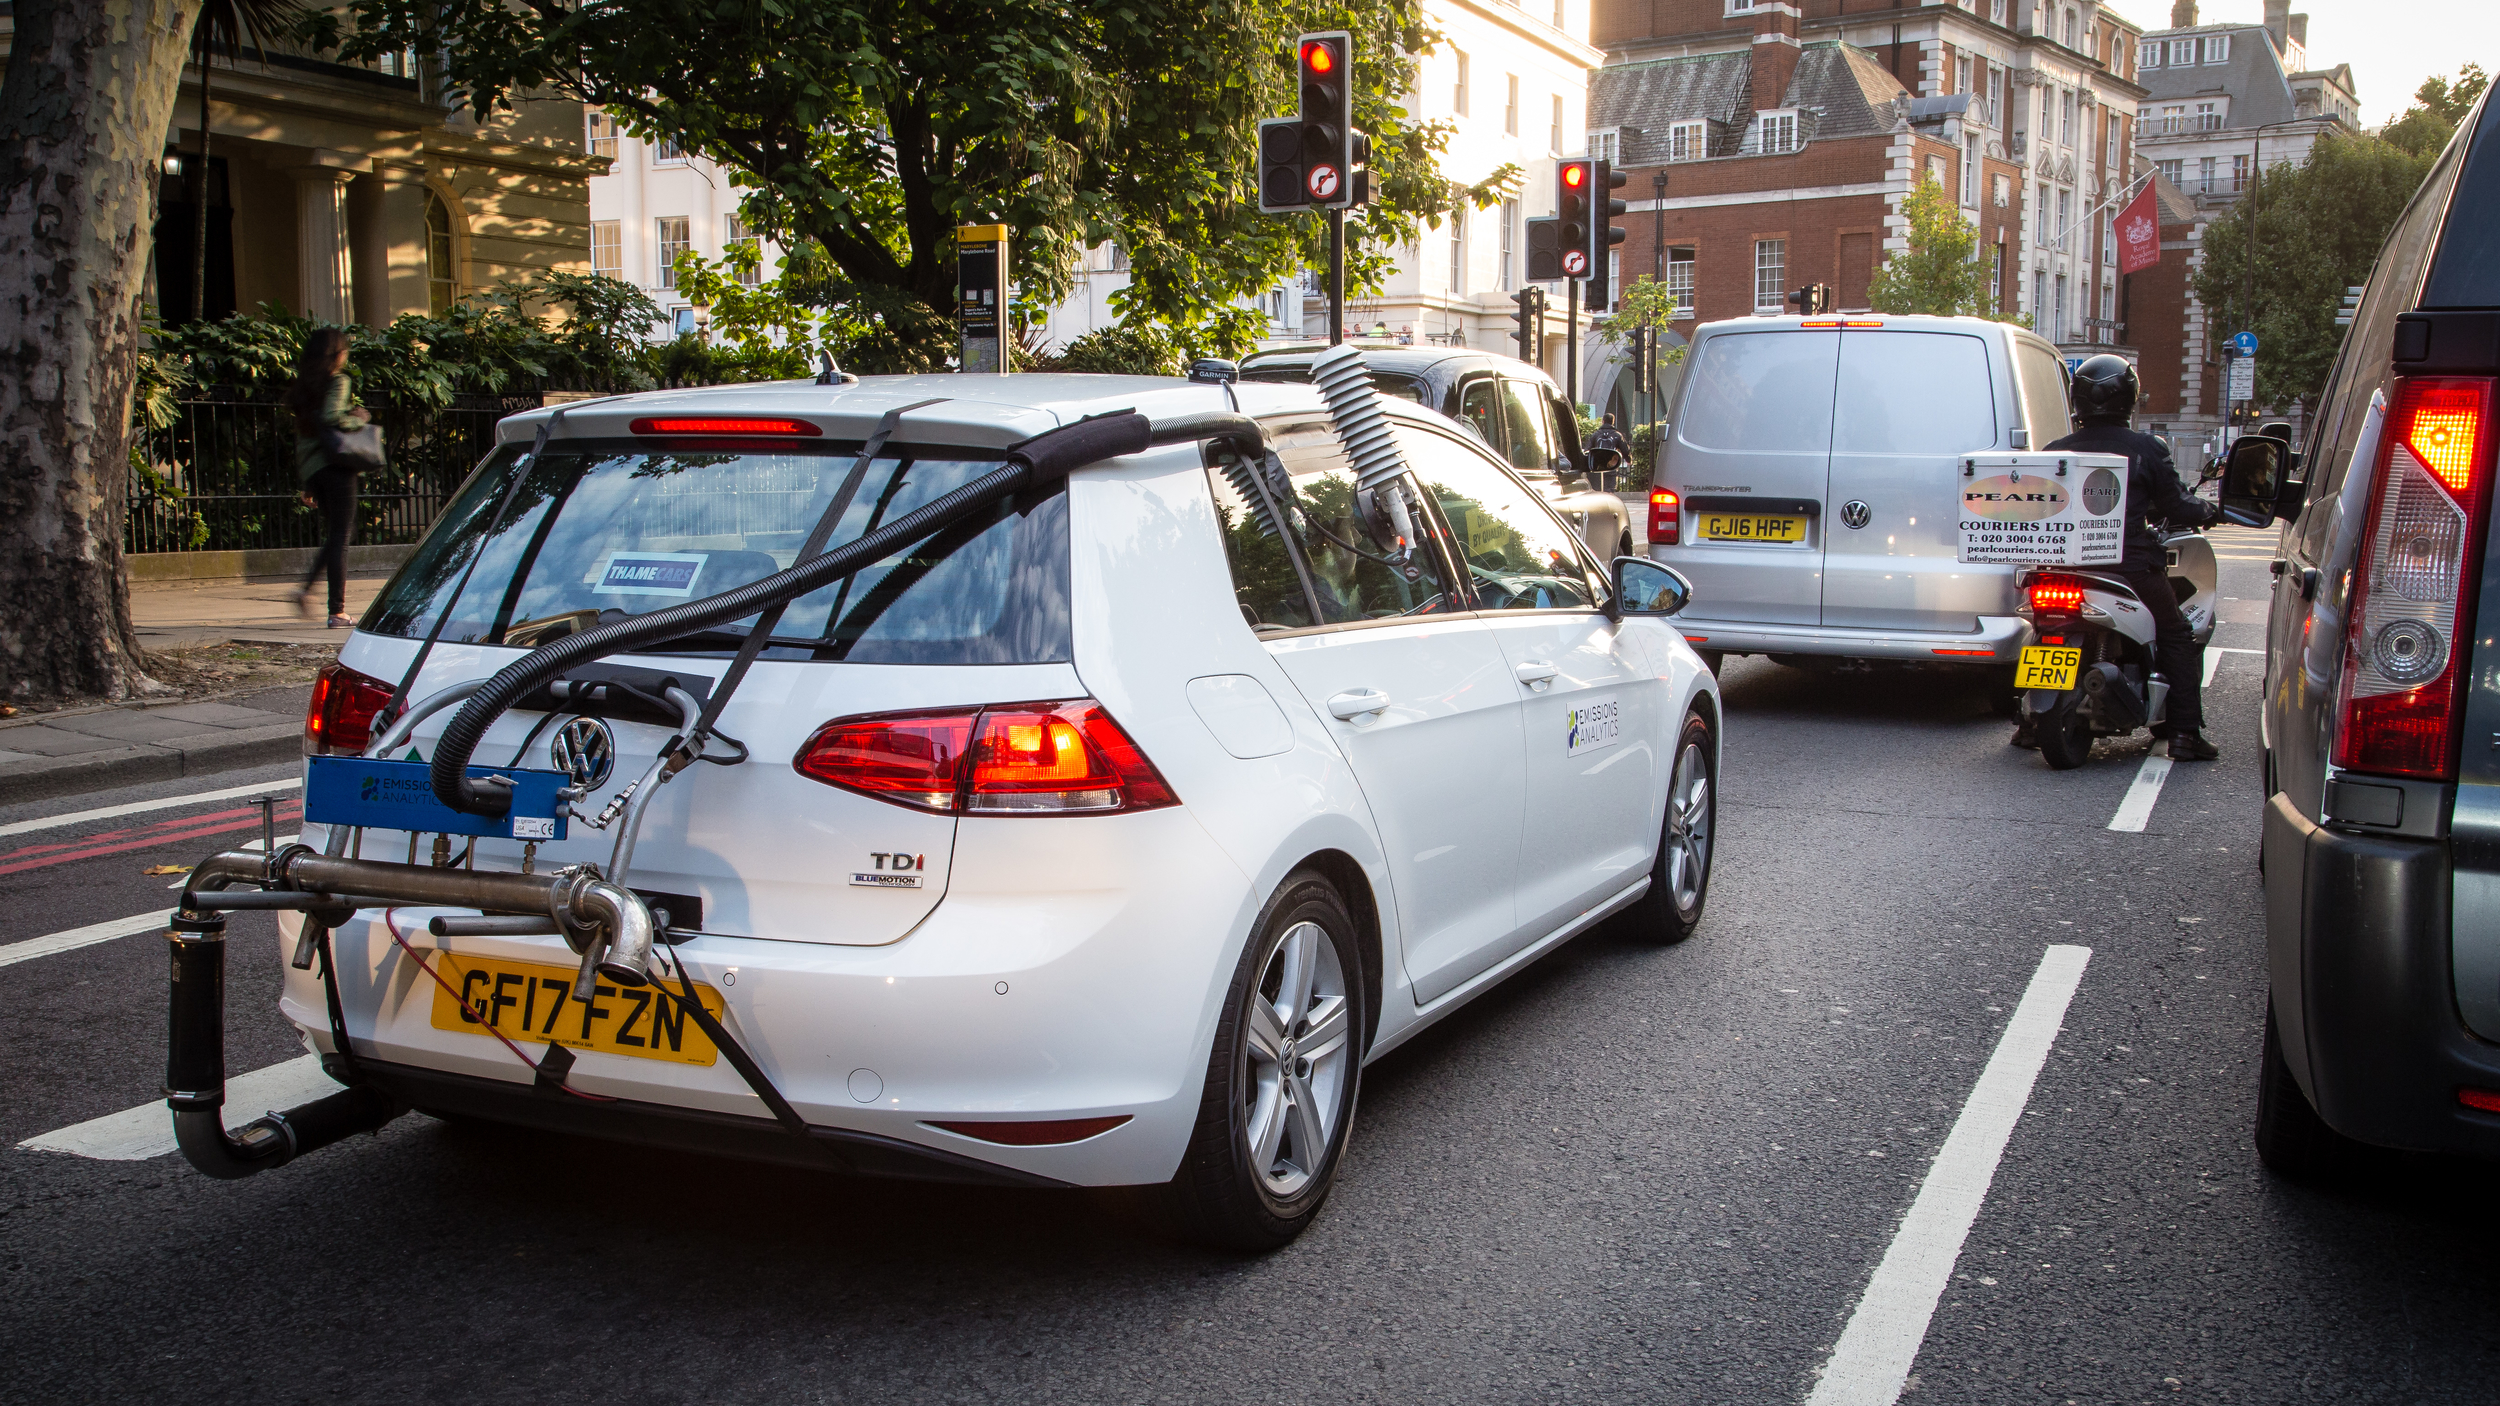 car with air pollution testing kit on